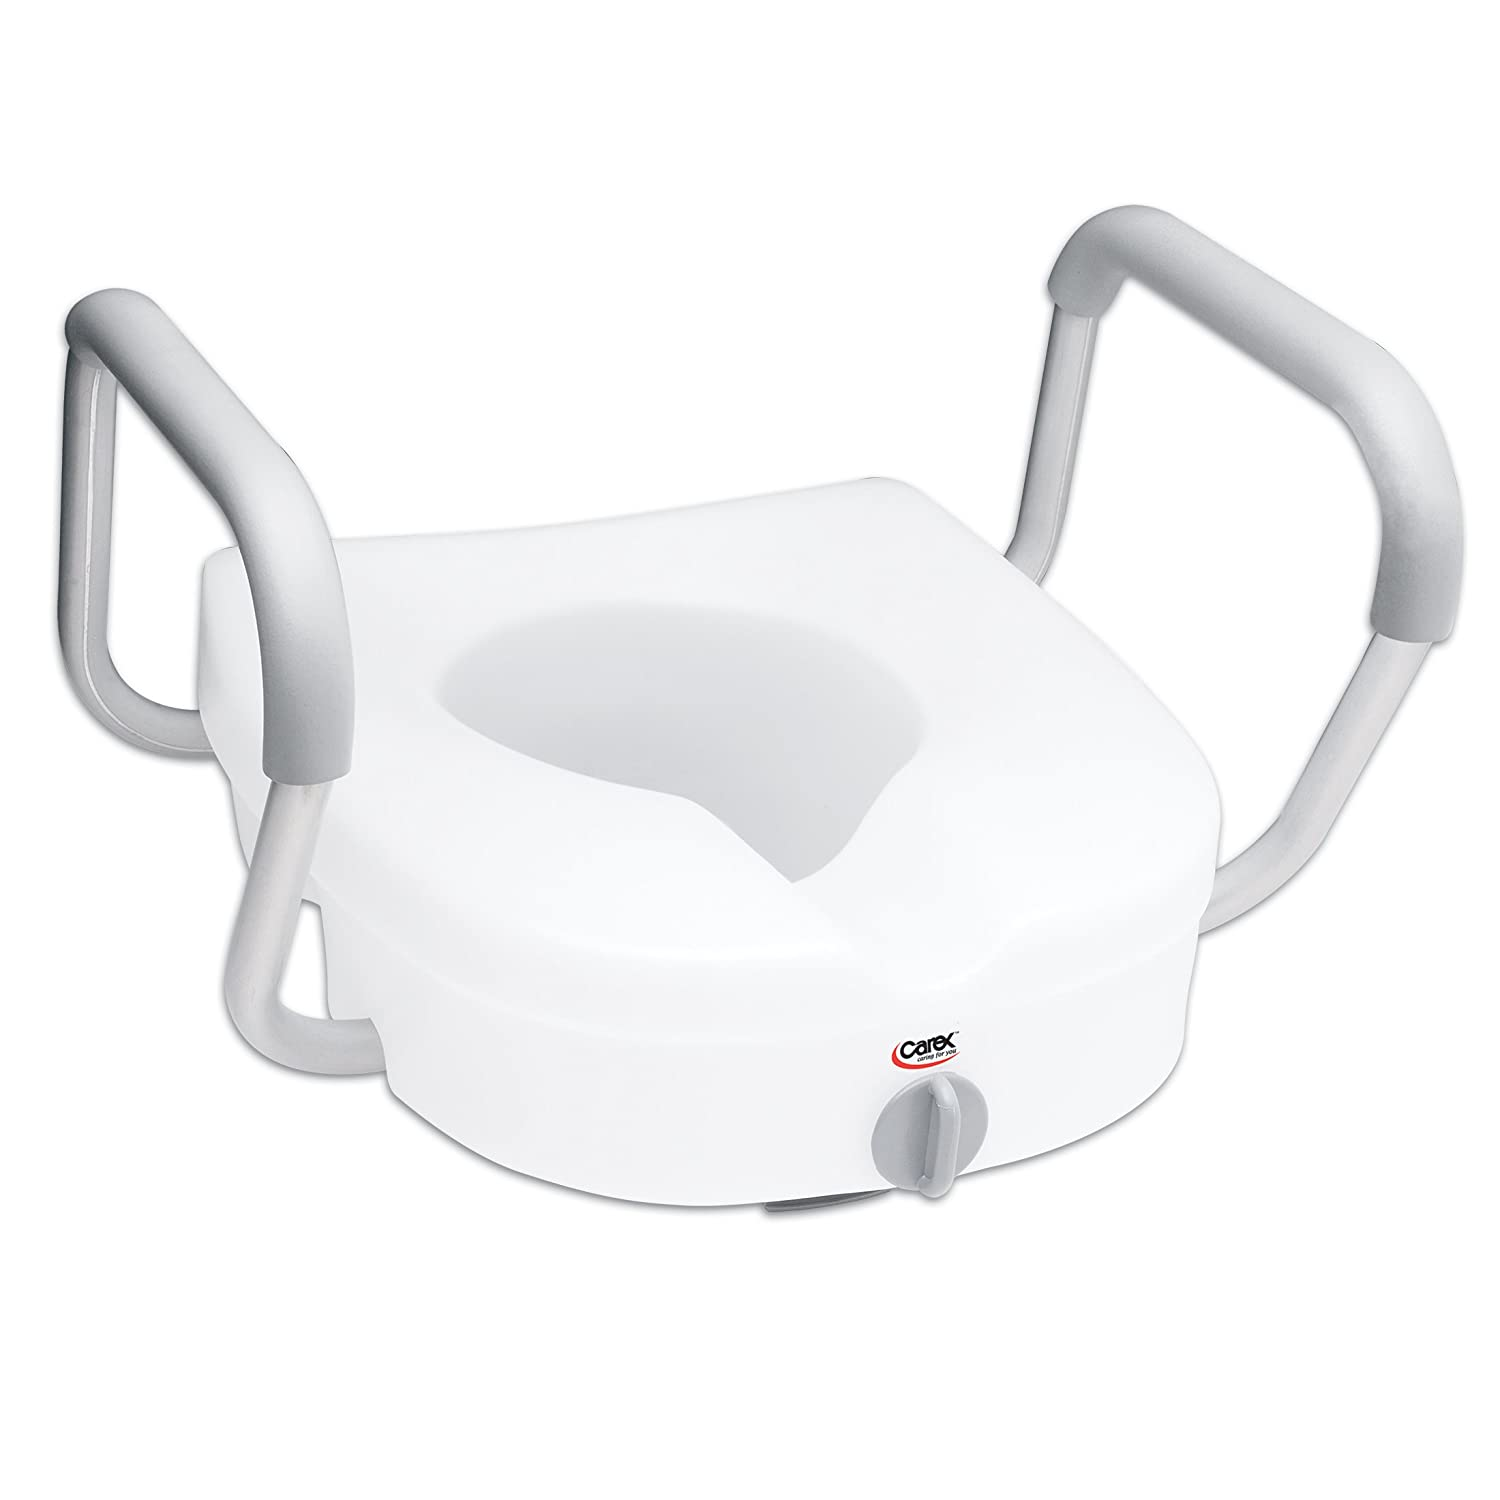 Awe Inspiring Carex Ez Lock Raised Toilet Seat With Handles 5 Inch Toilet Seat Riser With Arms Fits Most Toilets Short Links Chair Design For Home Short Linksinfo